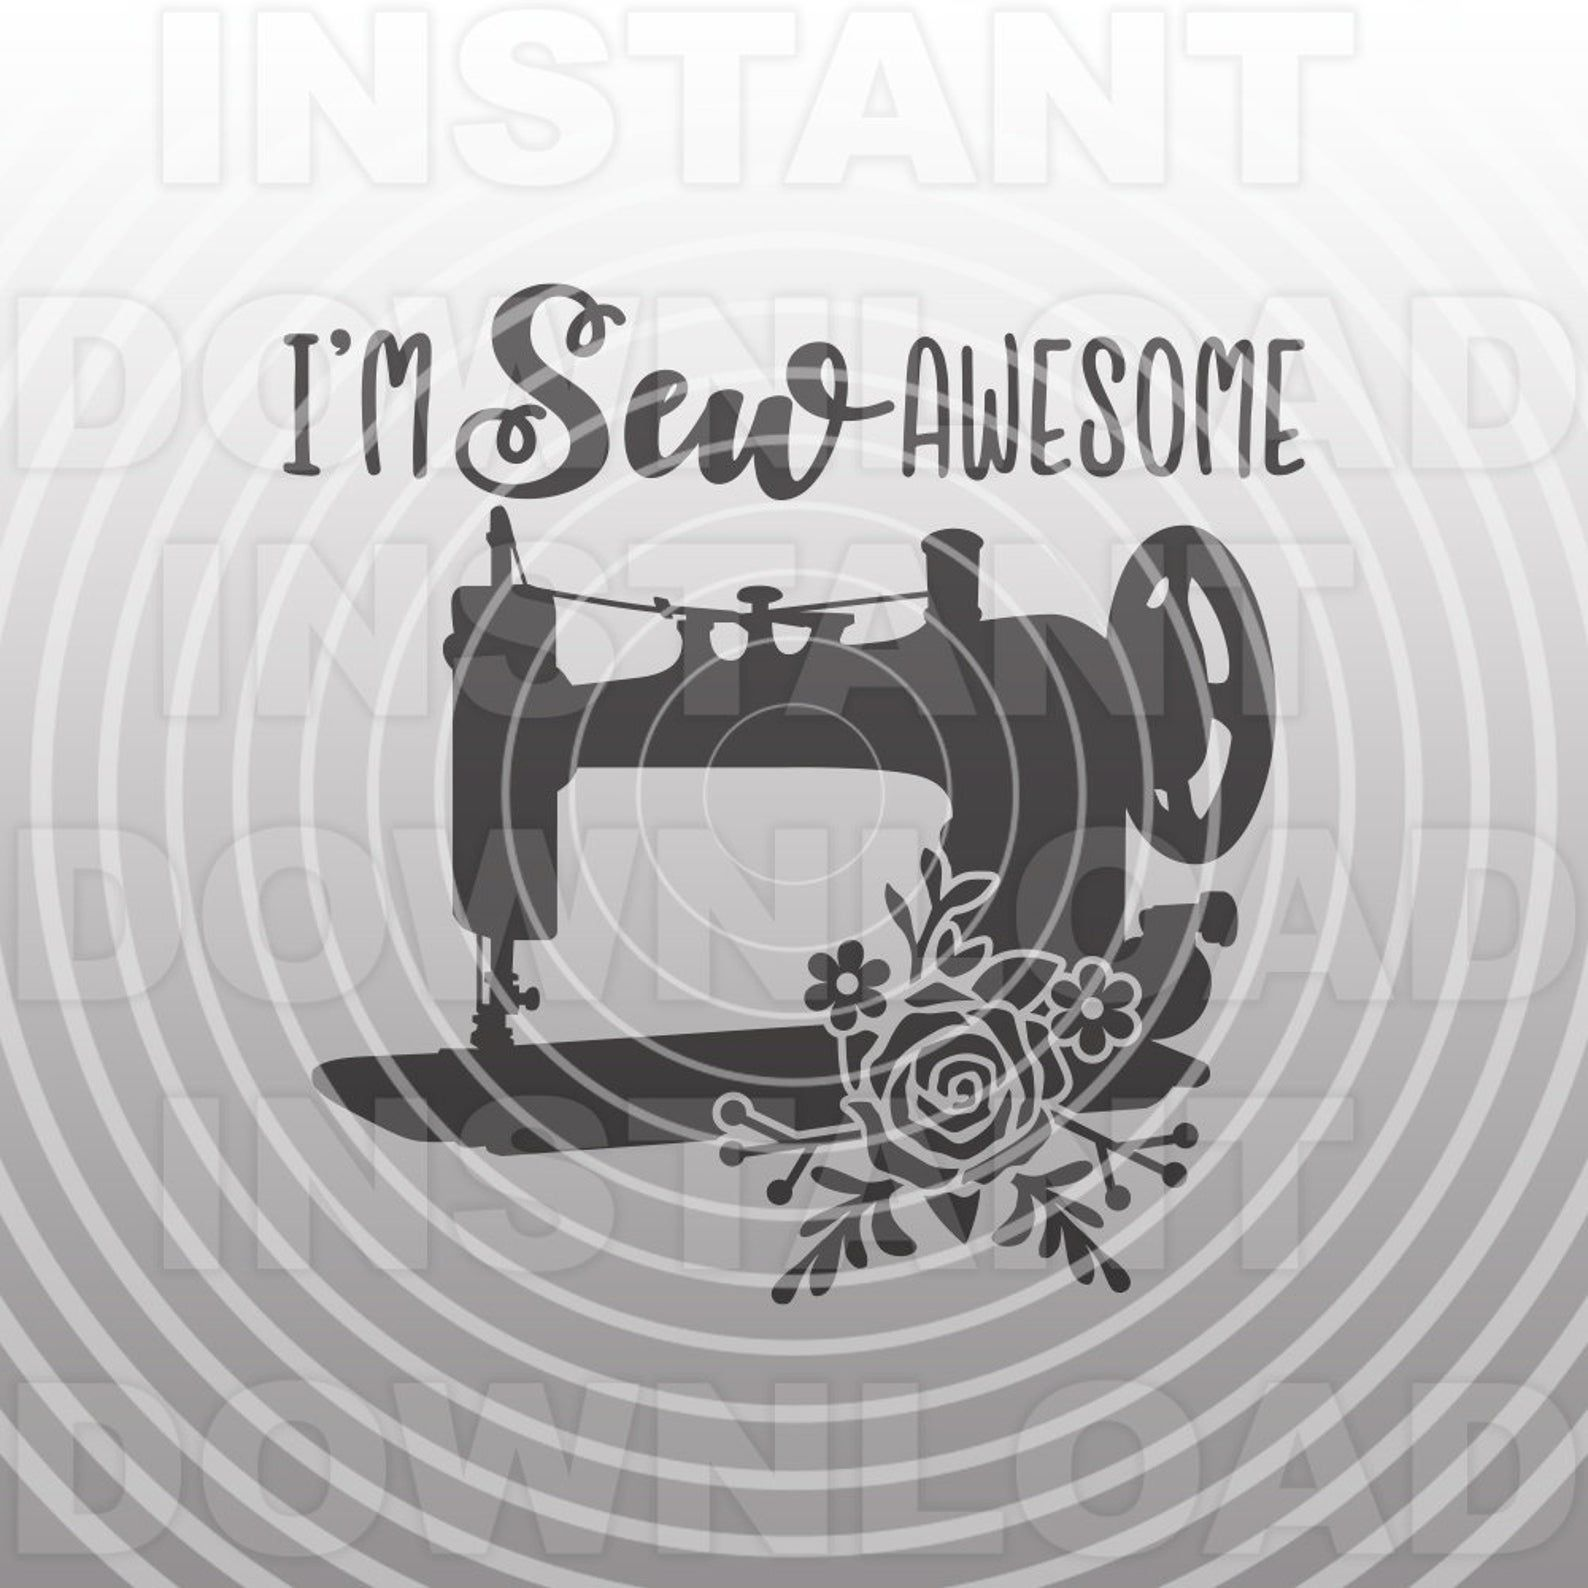 I'm So Awesome Funny Sewing Machine SVG File,Tailor